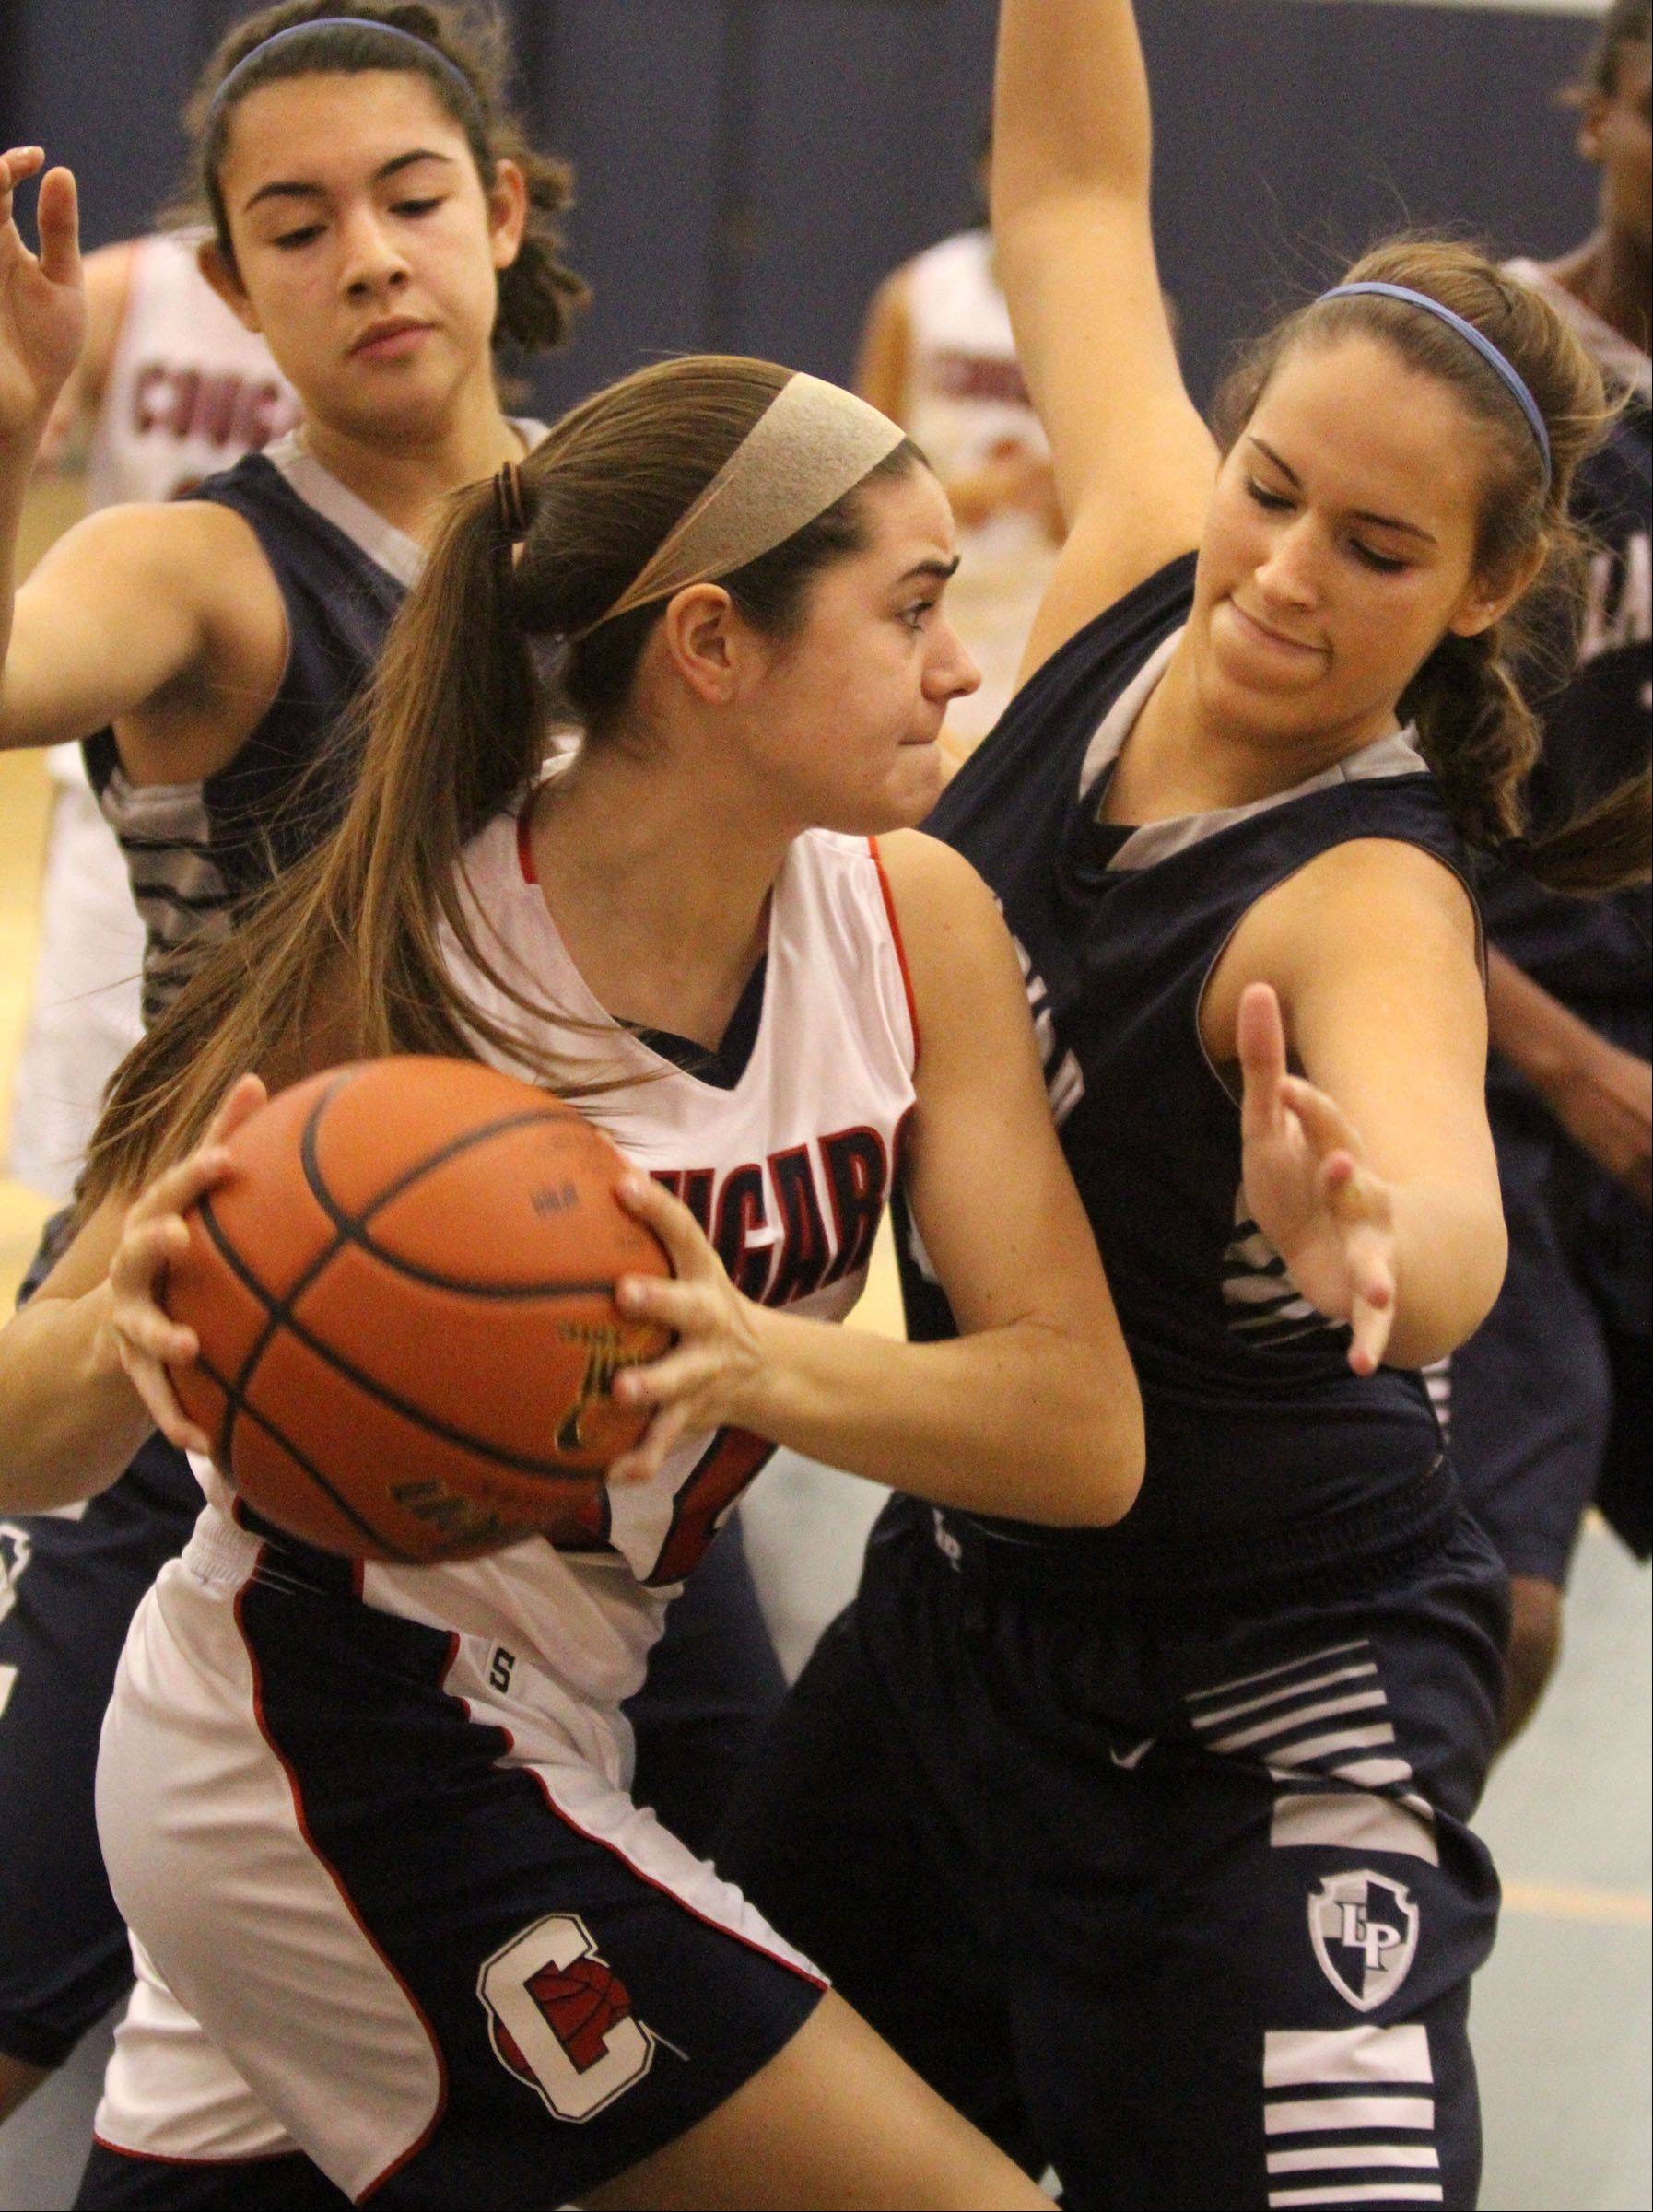 Conant's Morgan Retzer looks to pass the ball while sandwiched between Lake Park defenders Maria Zepeda, left, and Kaley Noonan on Saturday.